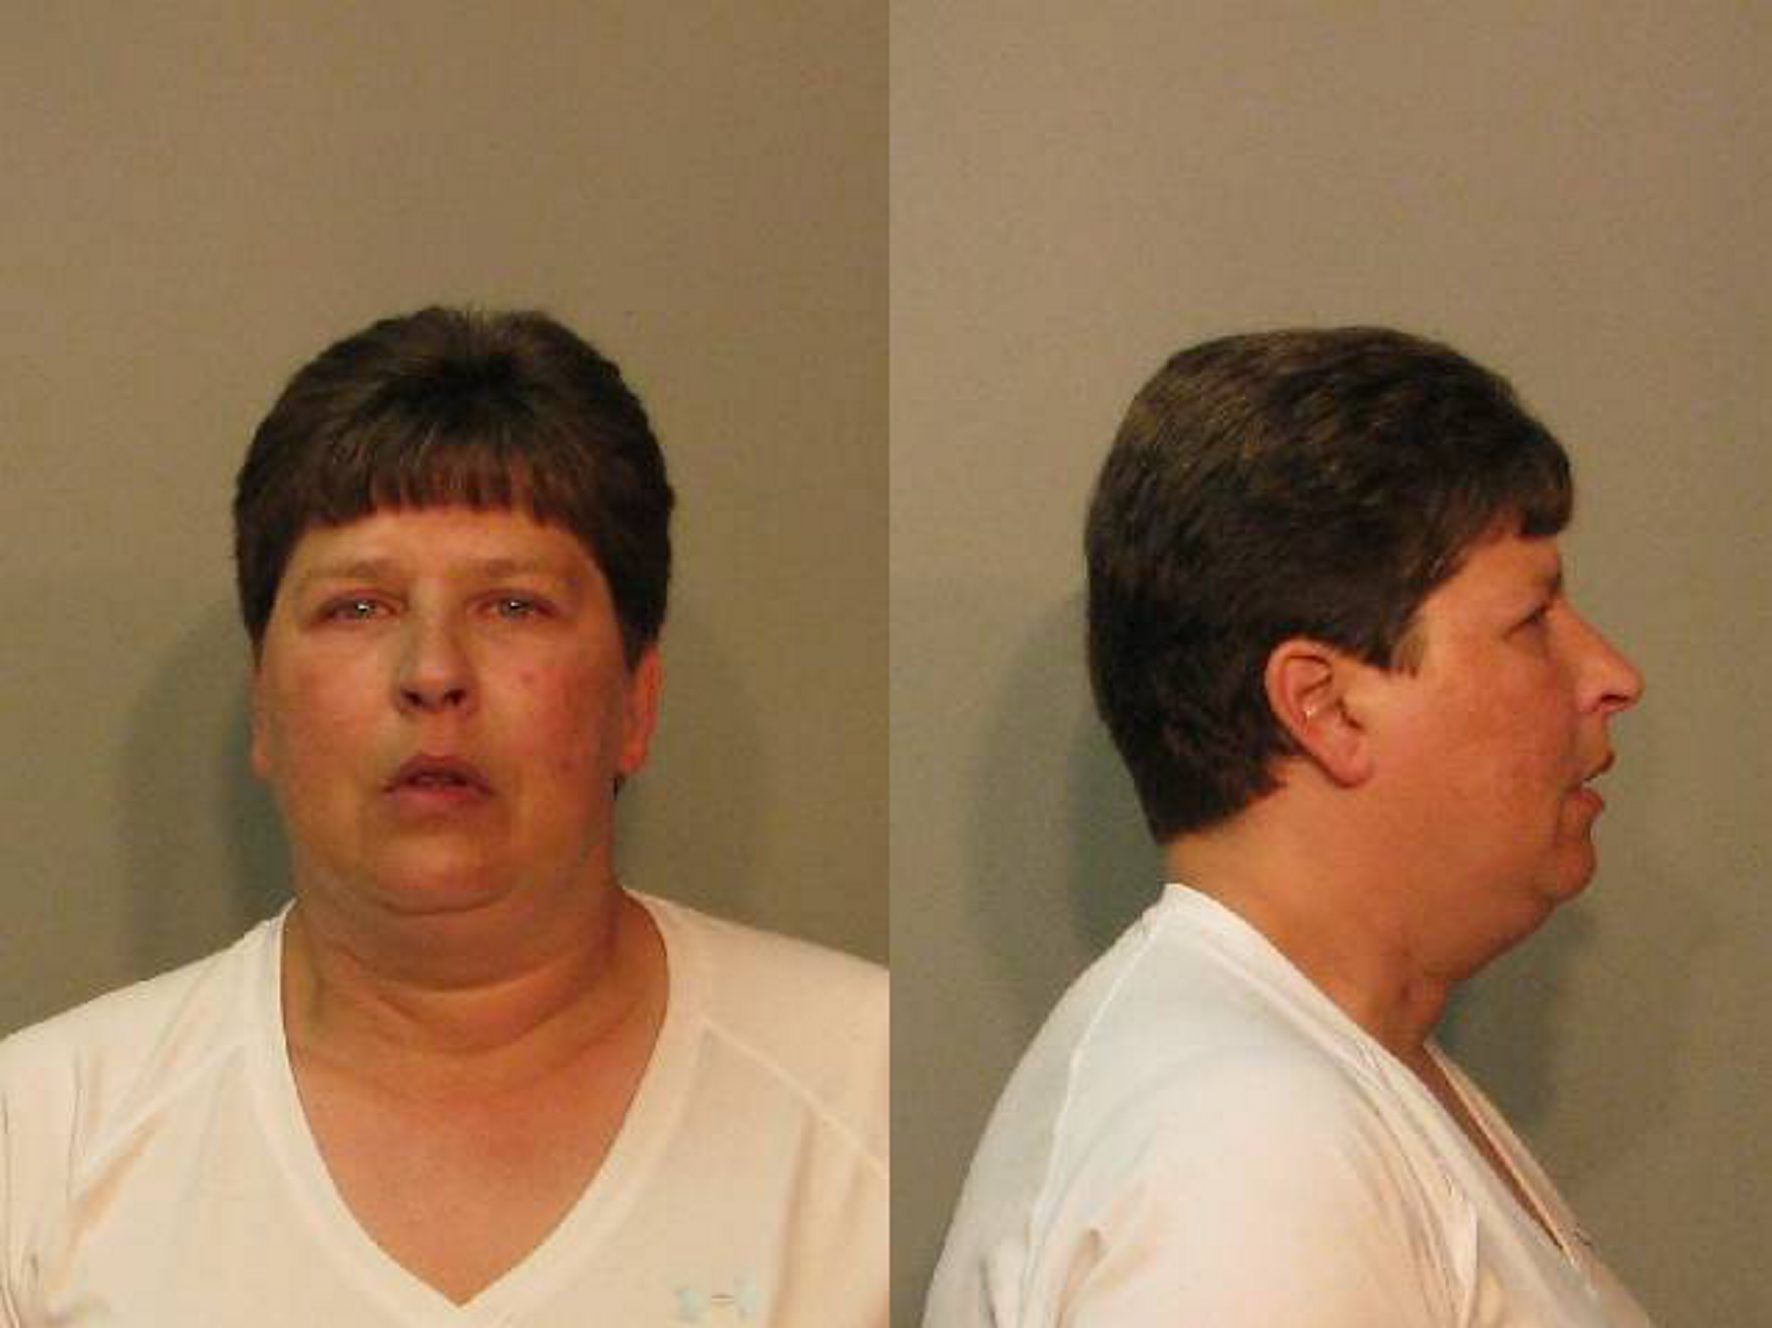 Michelle Johnston of North Tonawanda has been charged with setting several small fires in her neighborhood and now is accused of setting a fire at her own home.